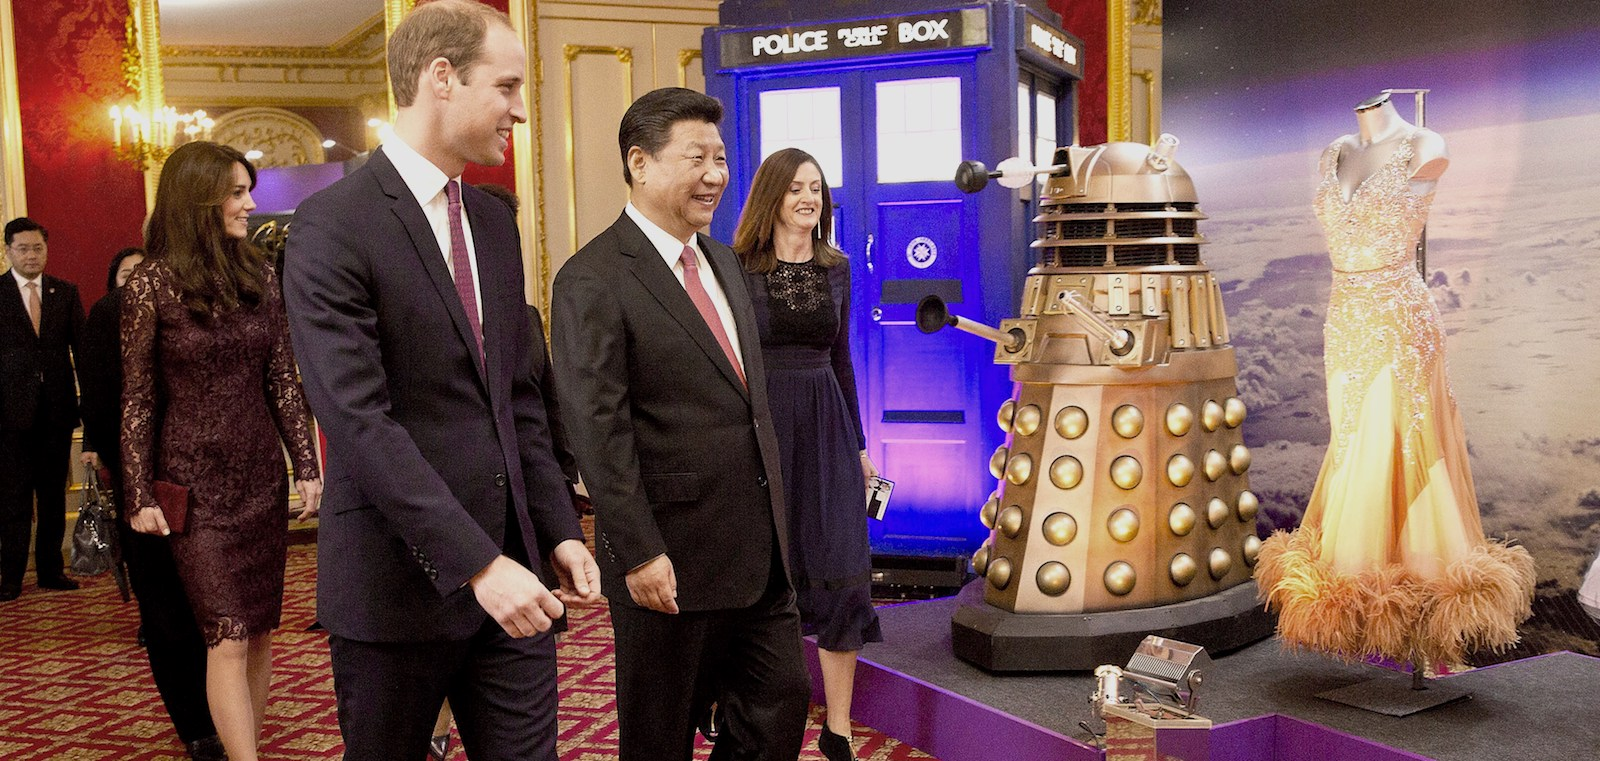 Catherine, Duchess of Cambridge, Prince William, and Chinese President Xi Jinping, walk past a Doctor Who display (Photo: Heathcliff O'Malley/Getty)